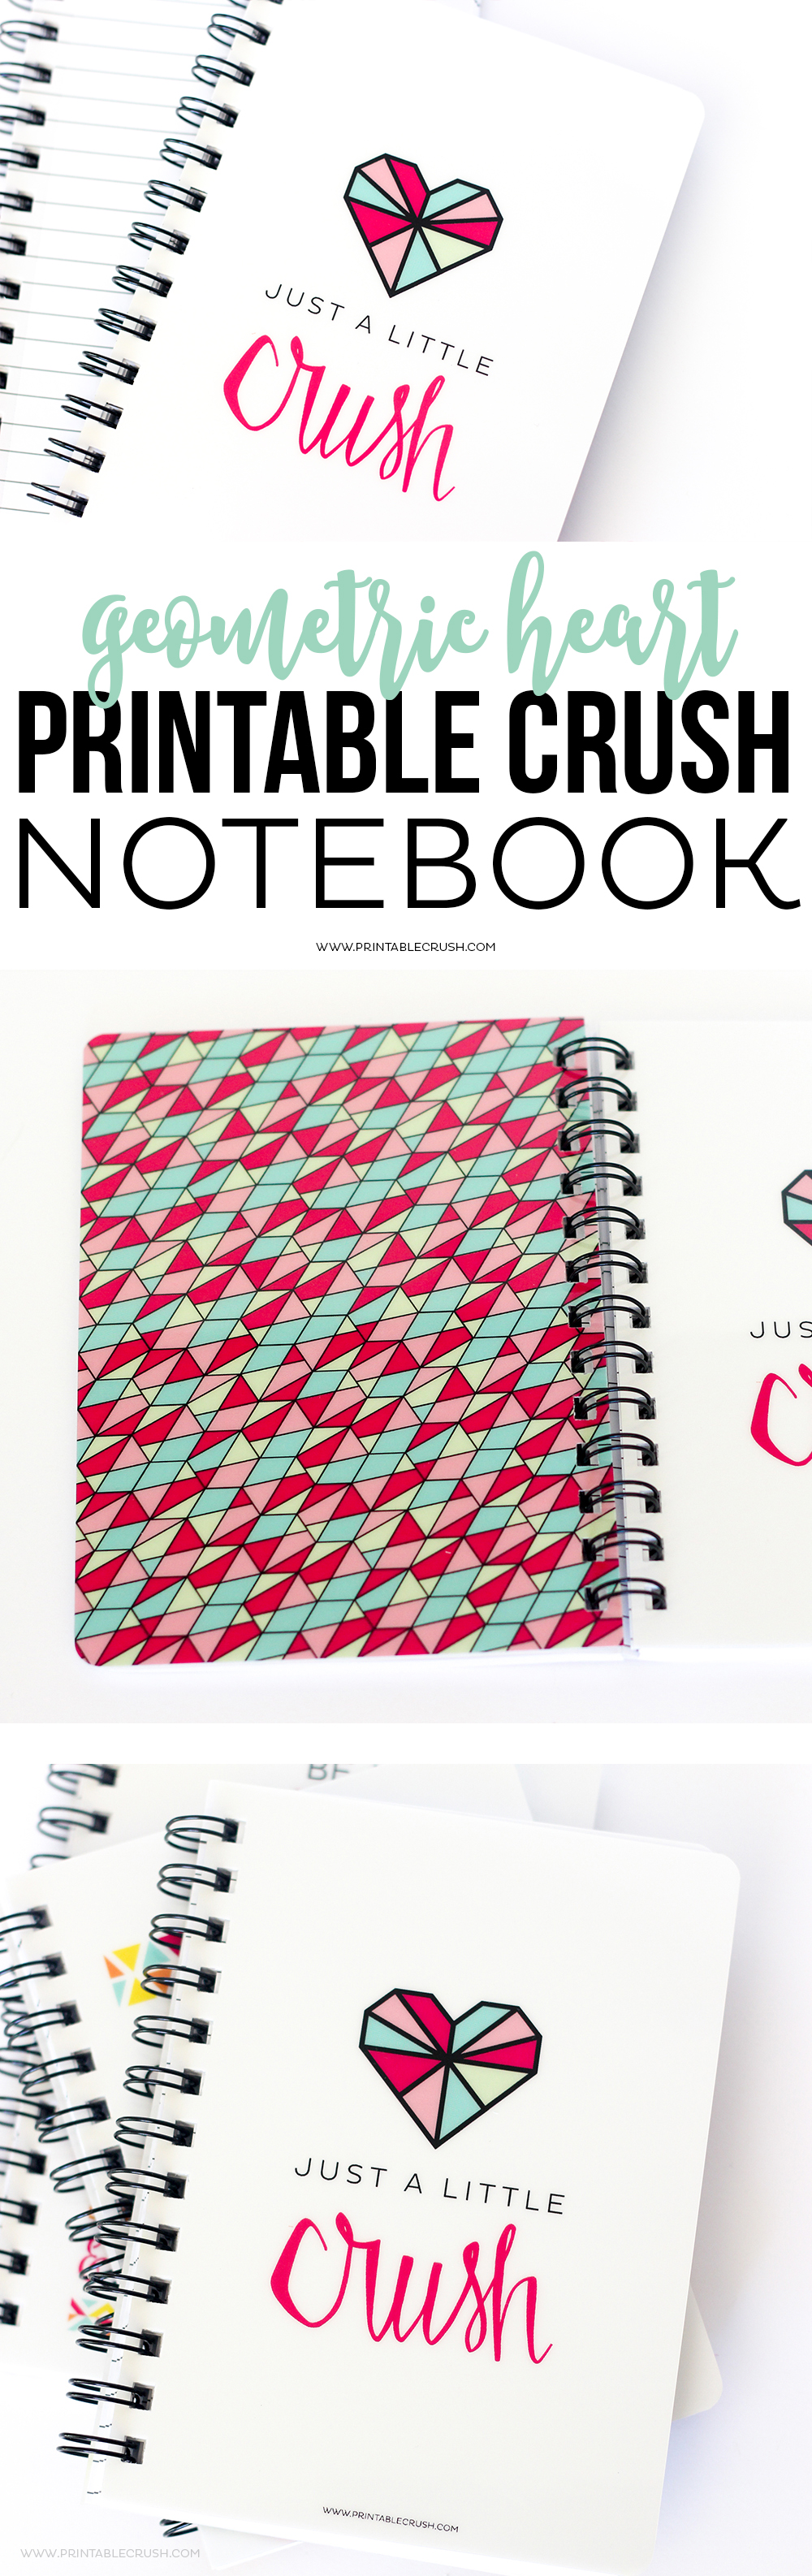 Keep those ideas flowing with this gorgeous Printable Crush Quote Spiral Notebook! It has a durable laminated cover and lined pages for when inspiration strikes!